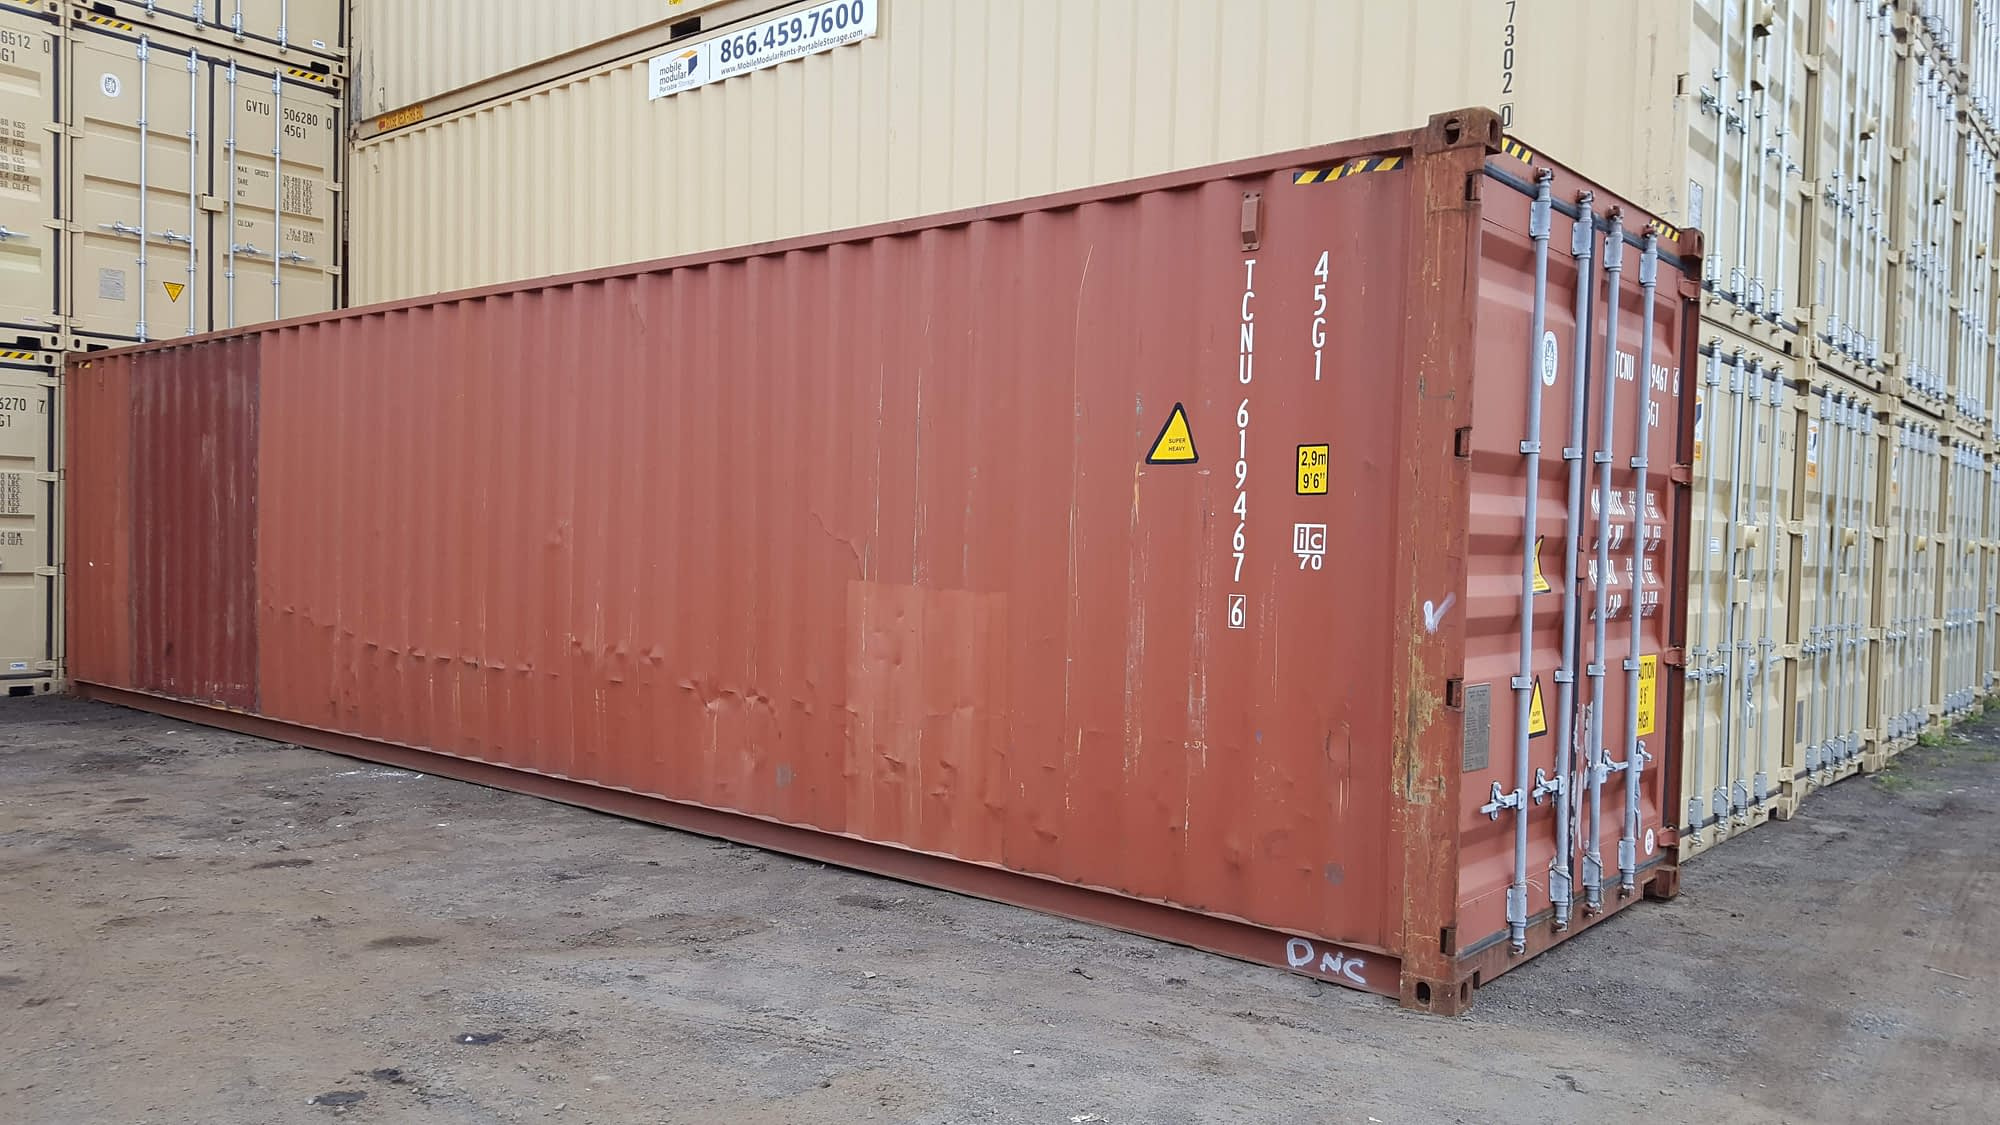 TRS Containers sells rents and modifies steel shipping and storage containers for export or domestic storage